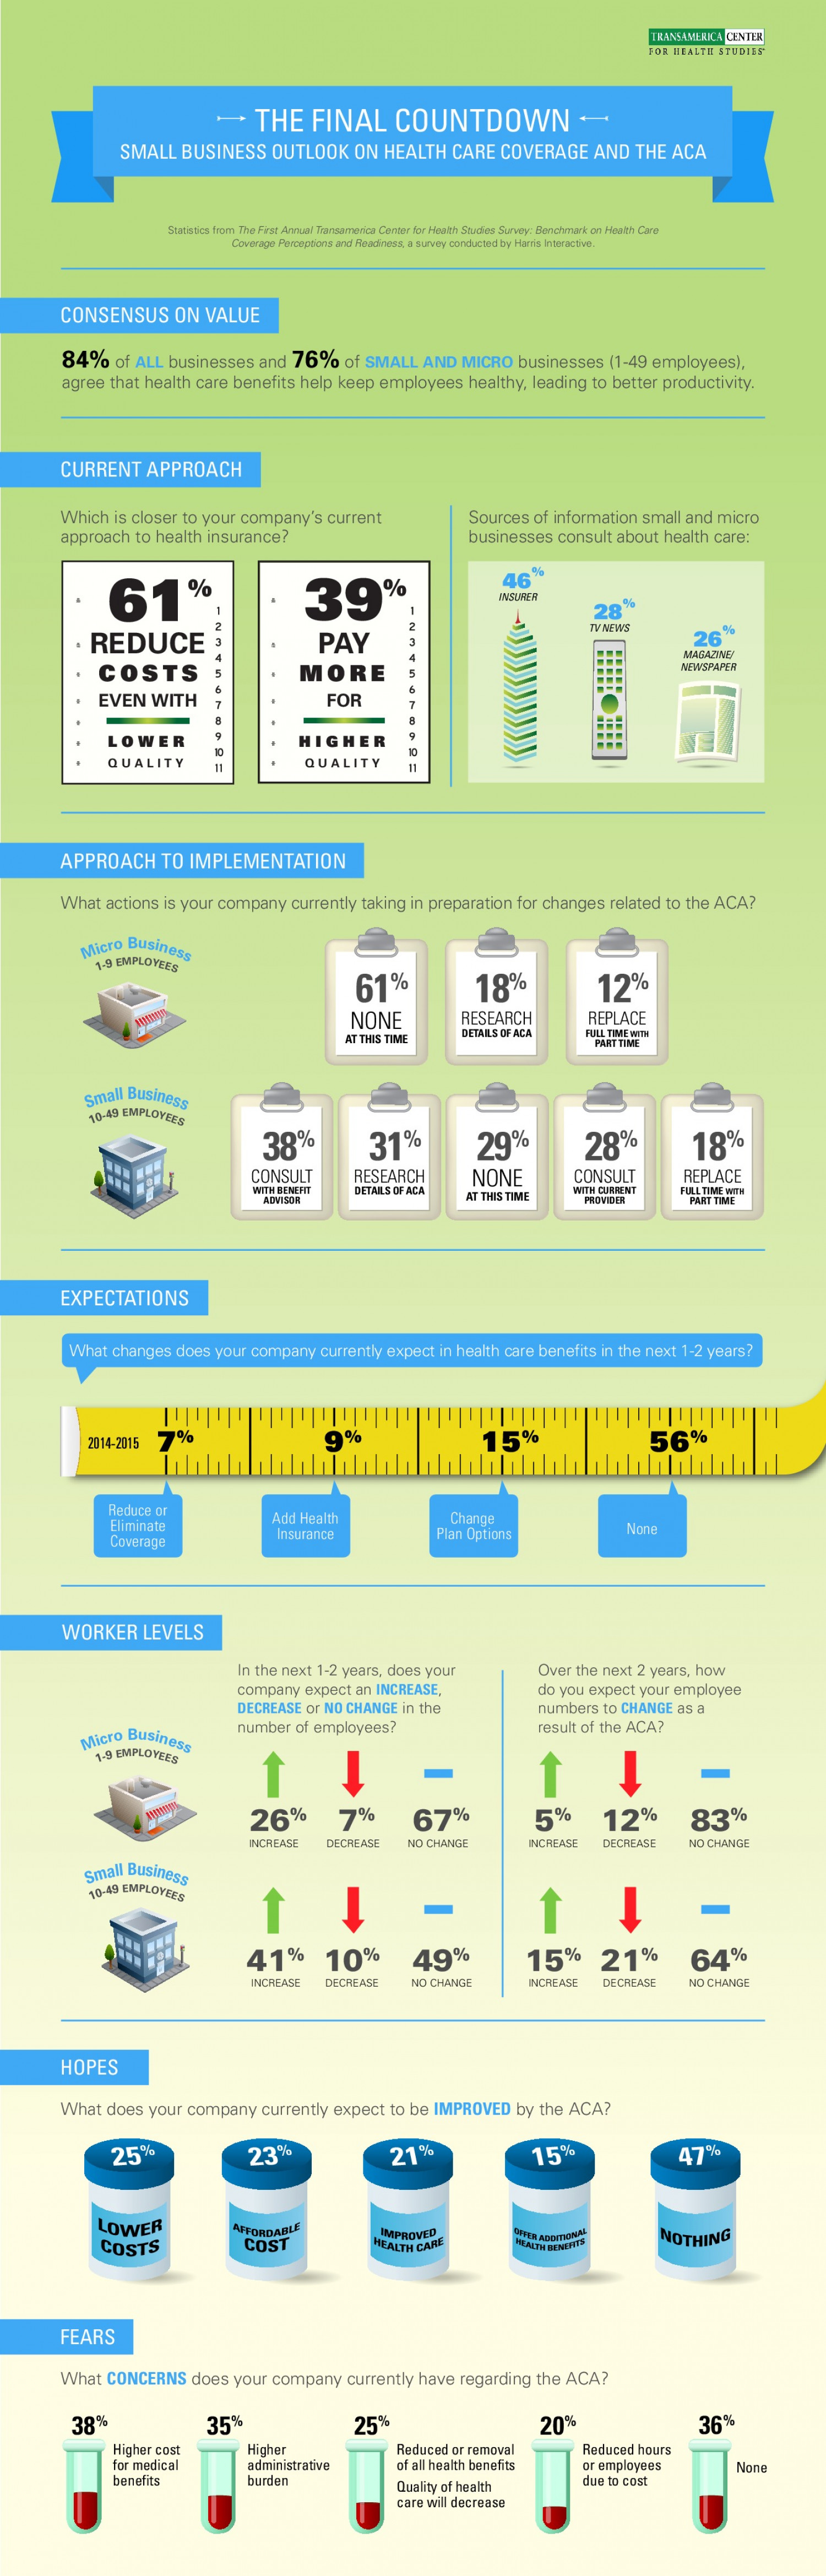 Transamerica Center for Health Studies The Final Countdown Infographic